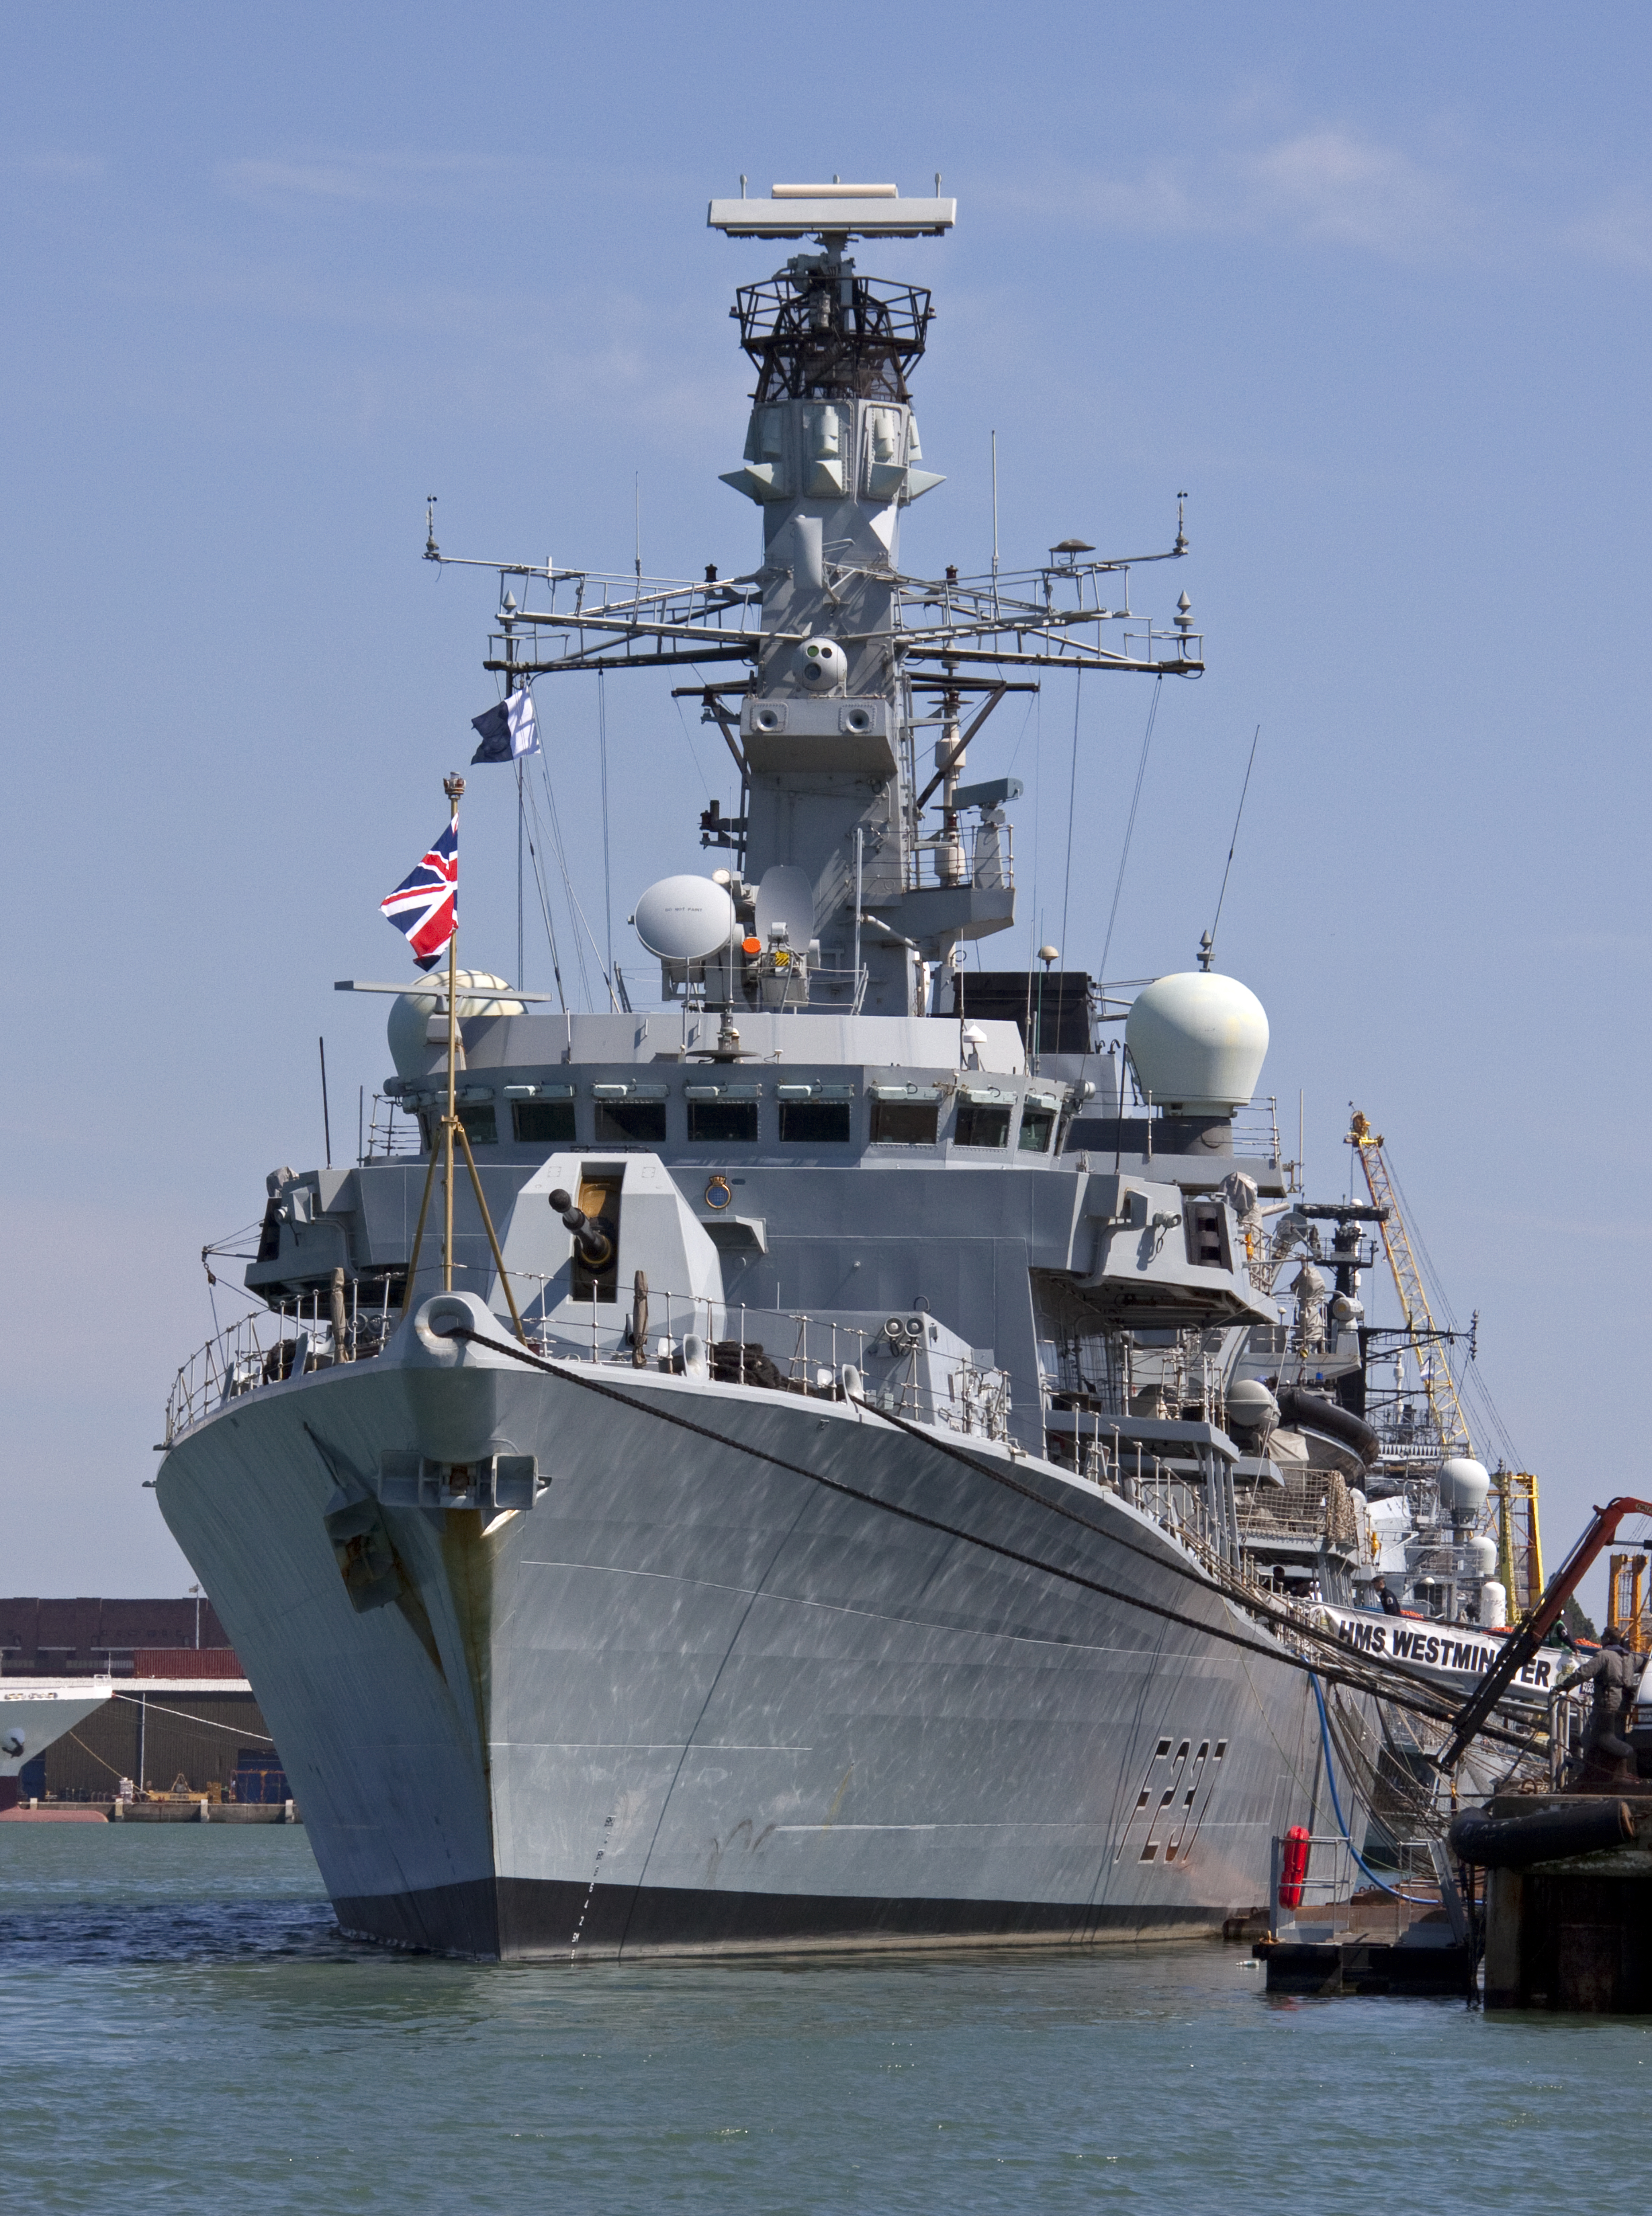 http://upload.wikimedia.org/wikipedia/commons/0/02/HMS_Westminster_F237_(1).jpg